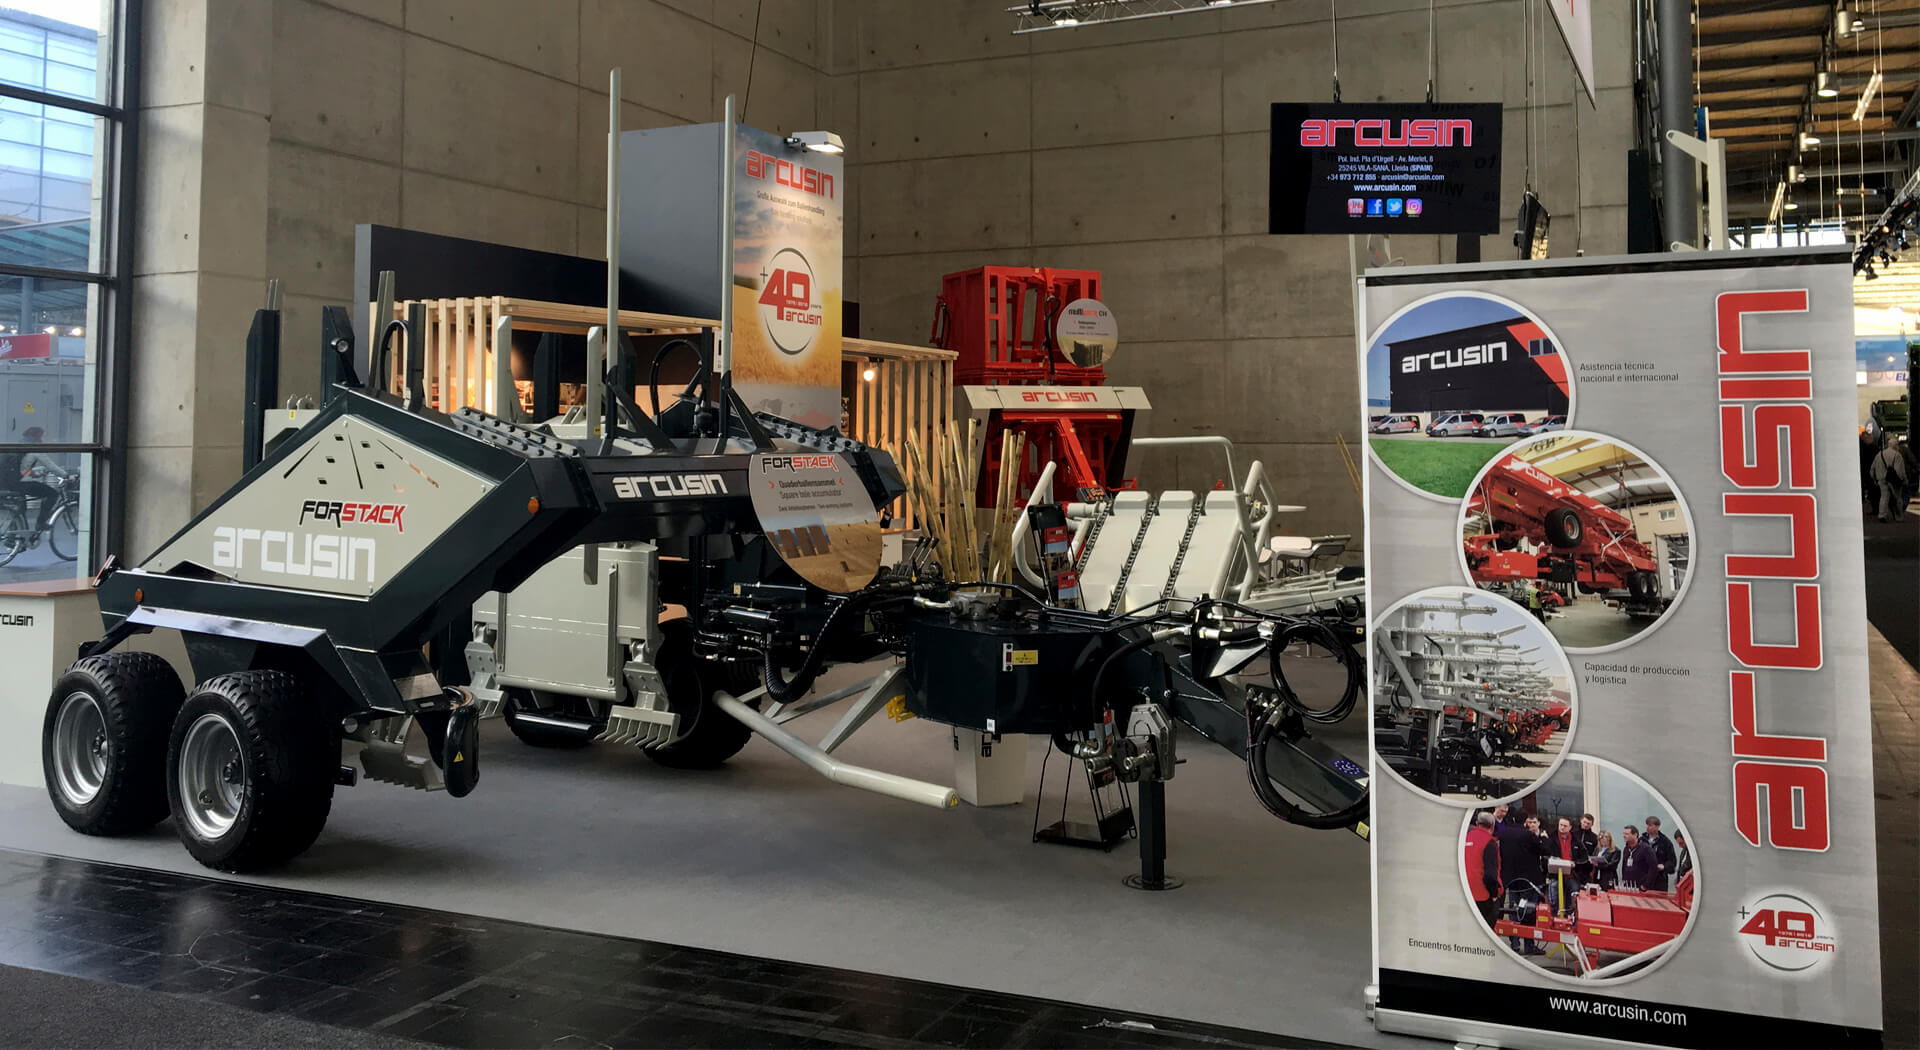 ARCUSIN AGRITECHNICA 2017 BALE HANDLING SOLUTIONS